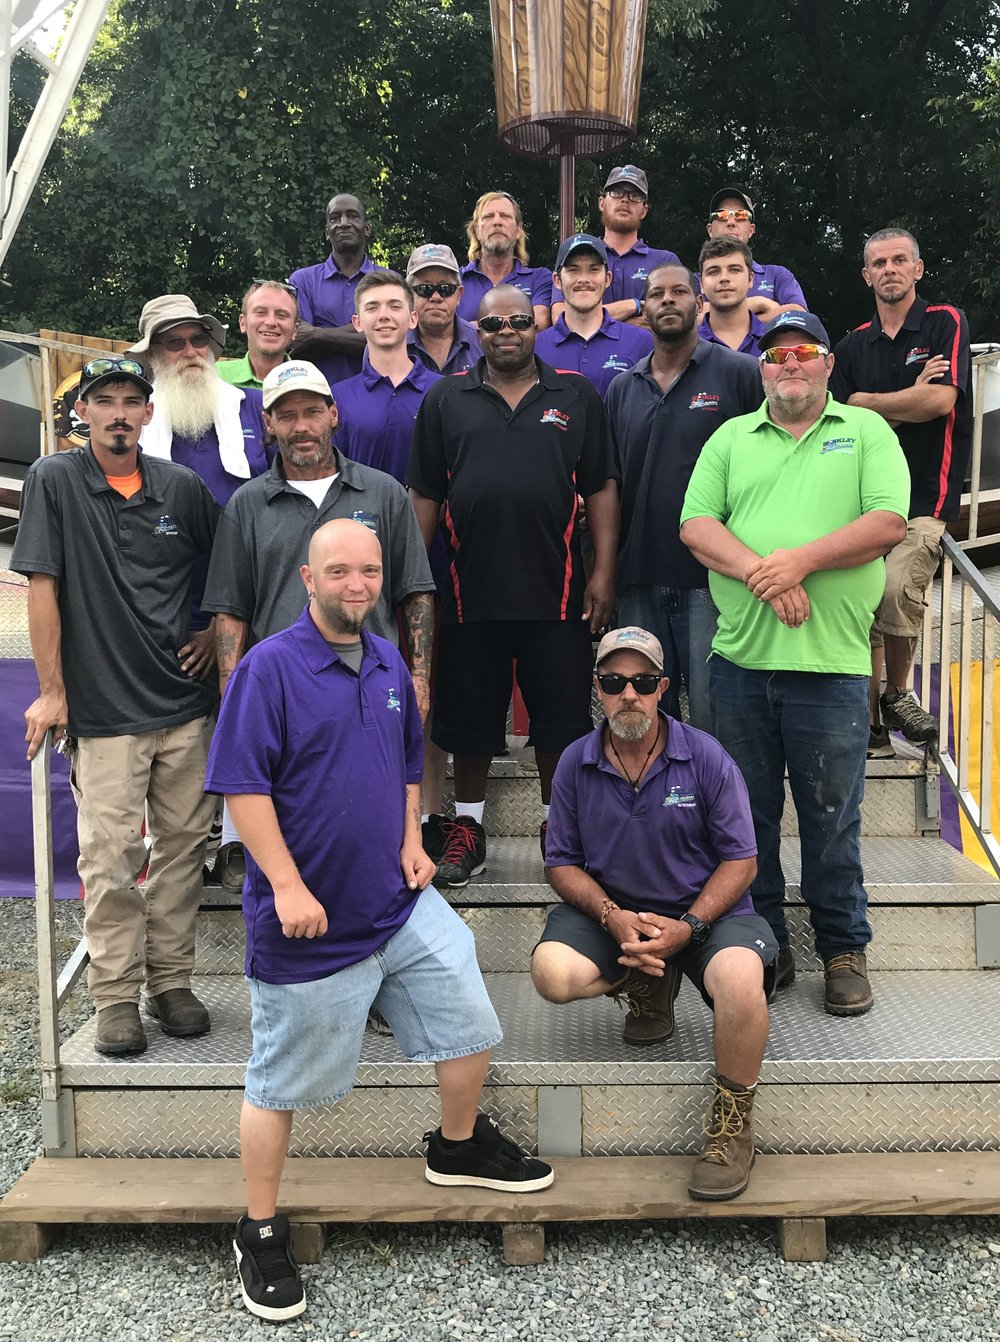 The hard working crew that makes sure the Matthews Alive carnival rides are safe and fun